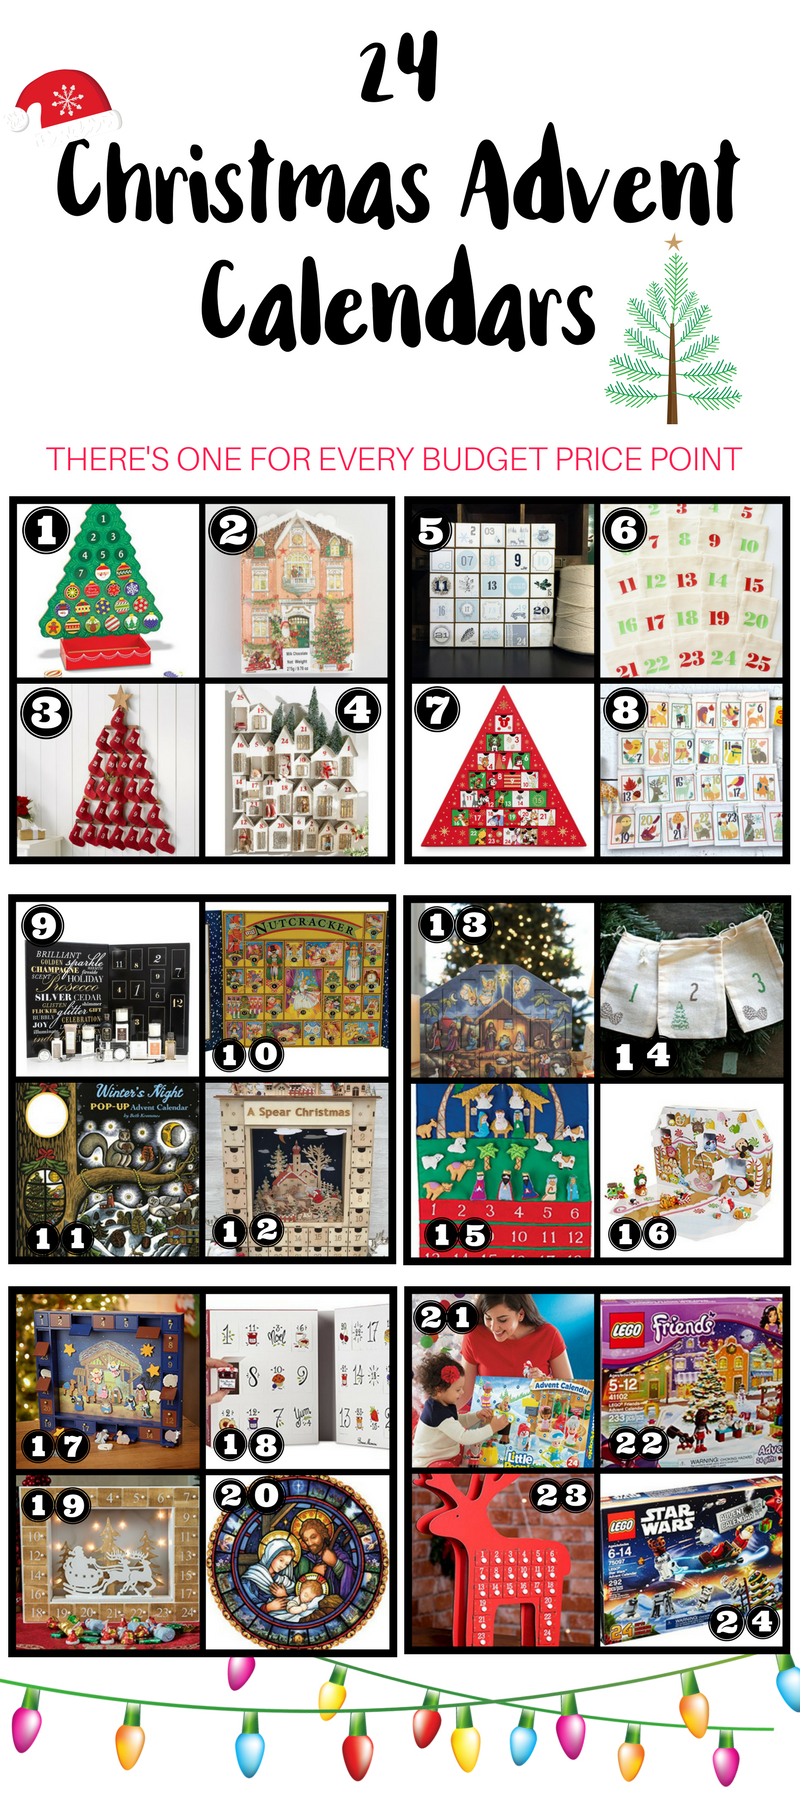 24 Christmas Advent Calendars (One For Every Budget Price Point)